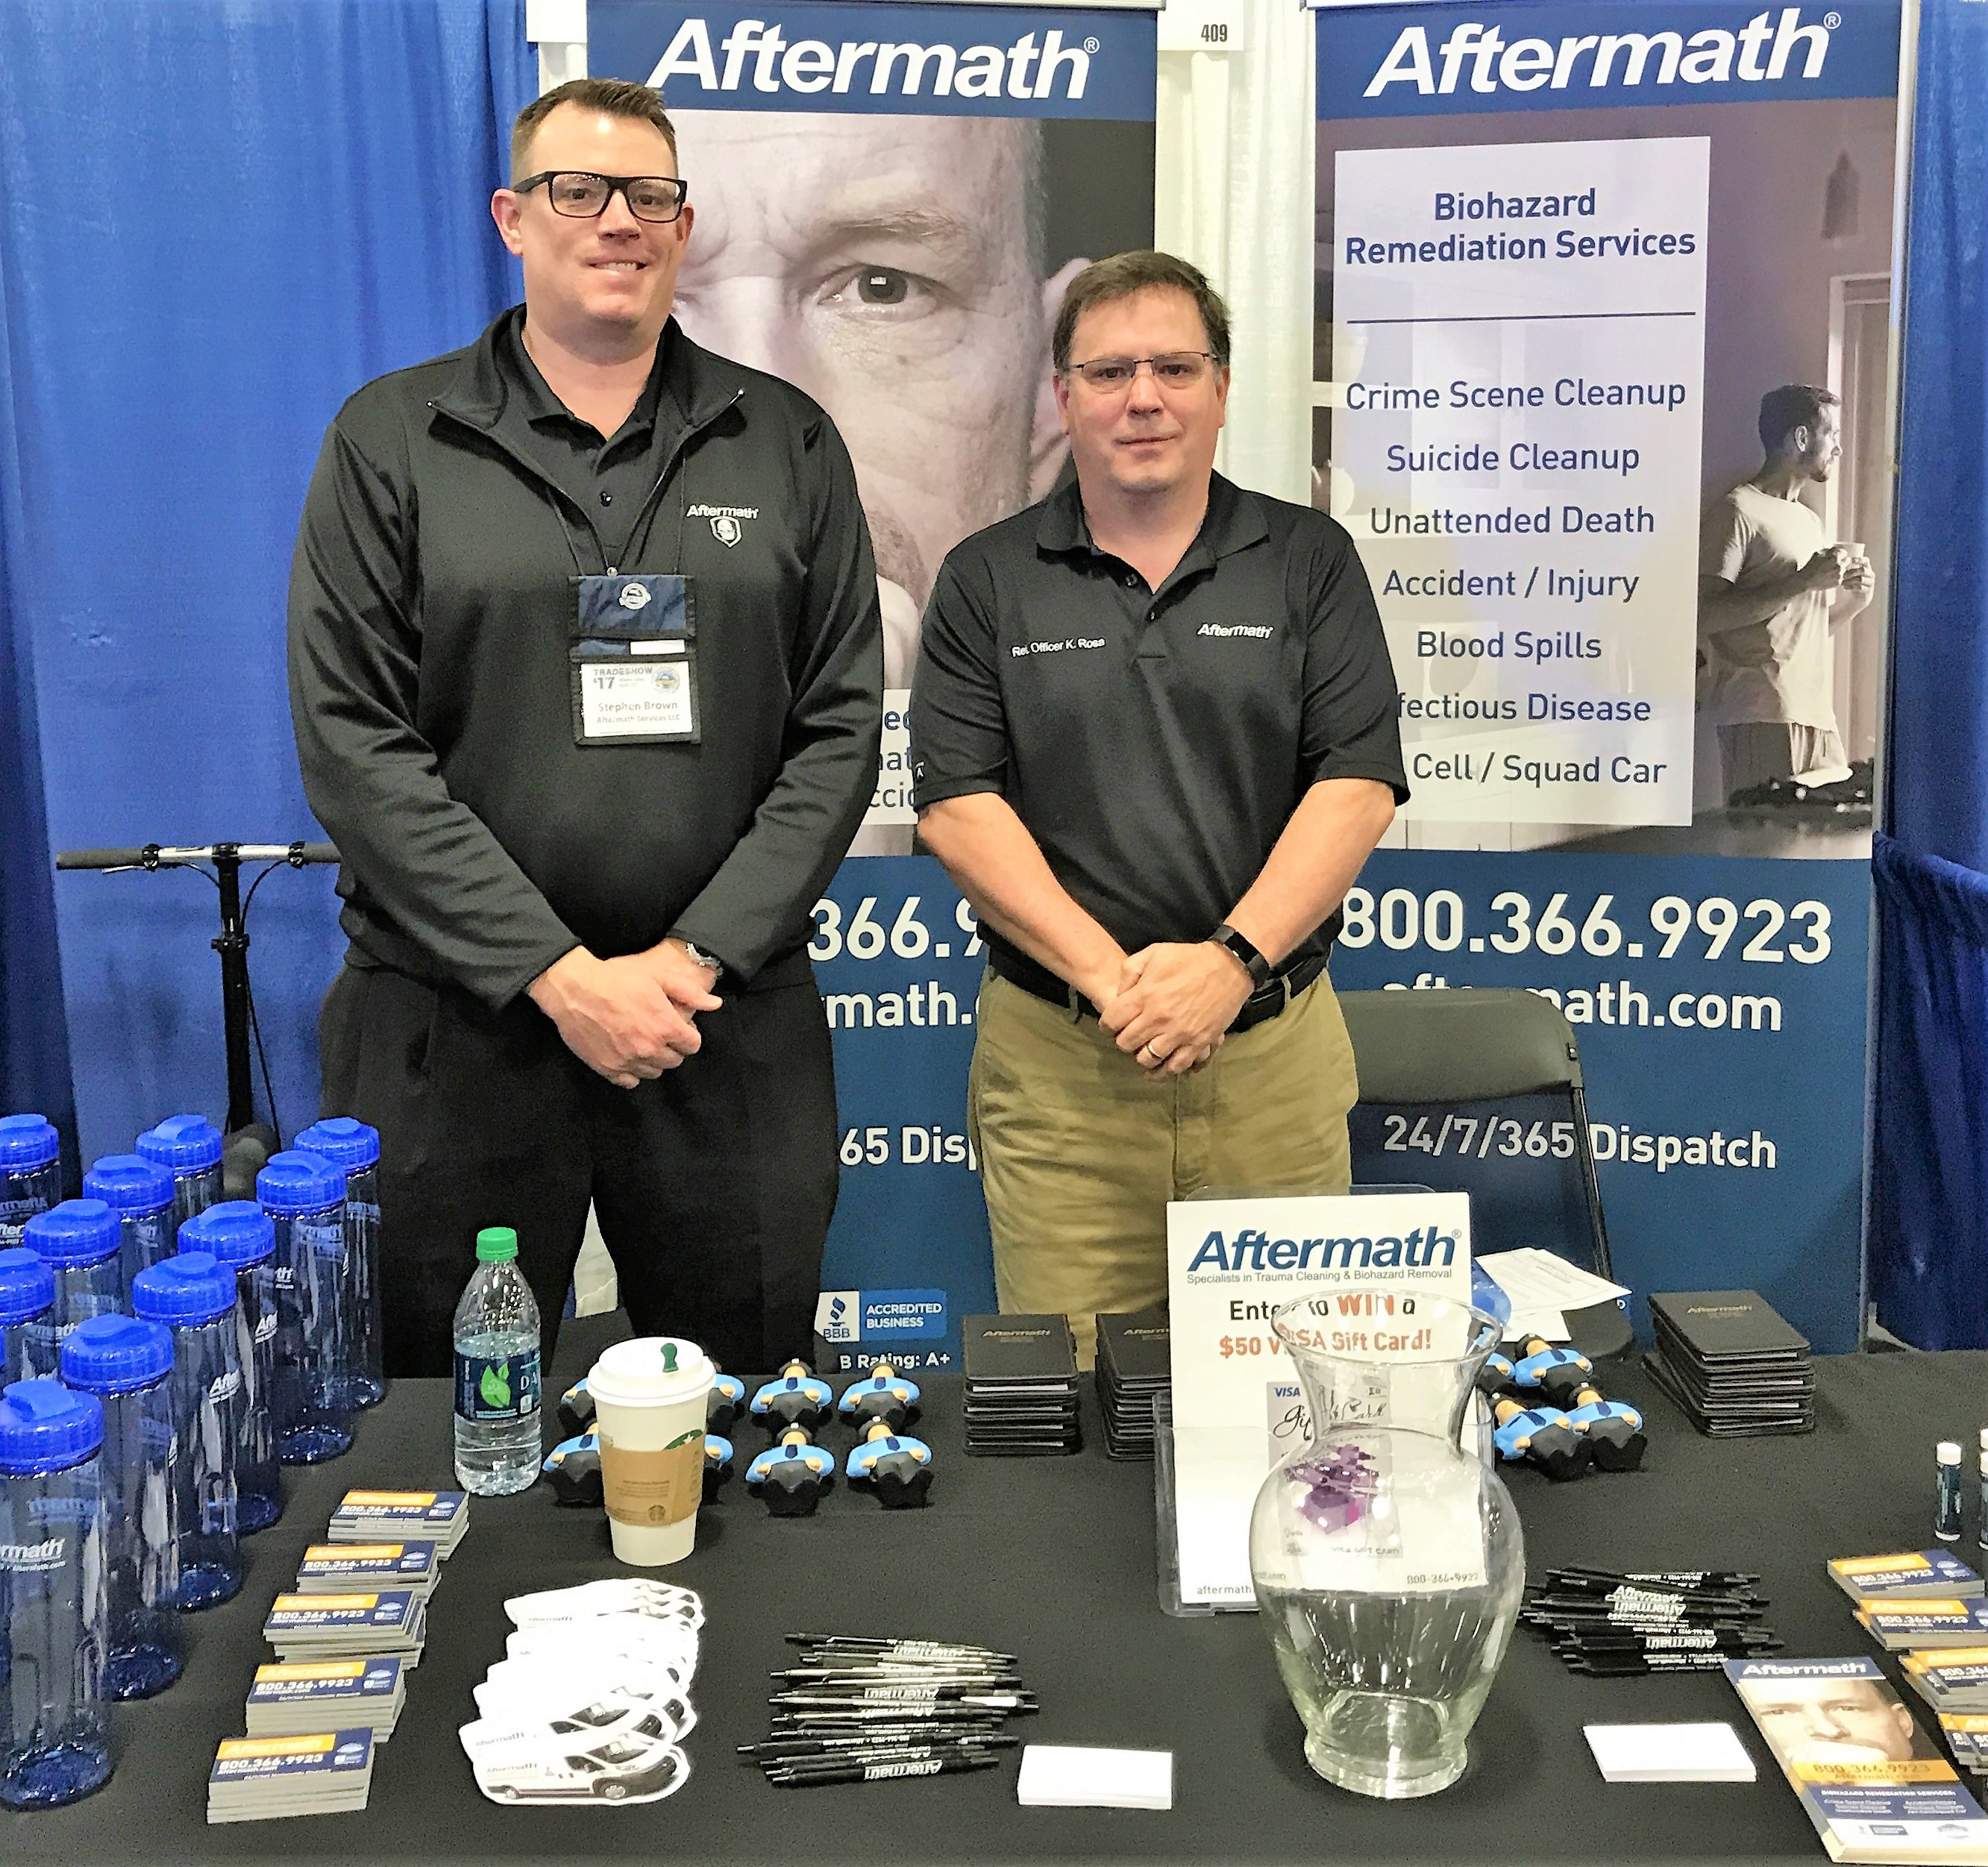 Aftermath booth at a conference